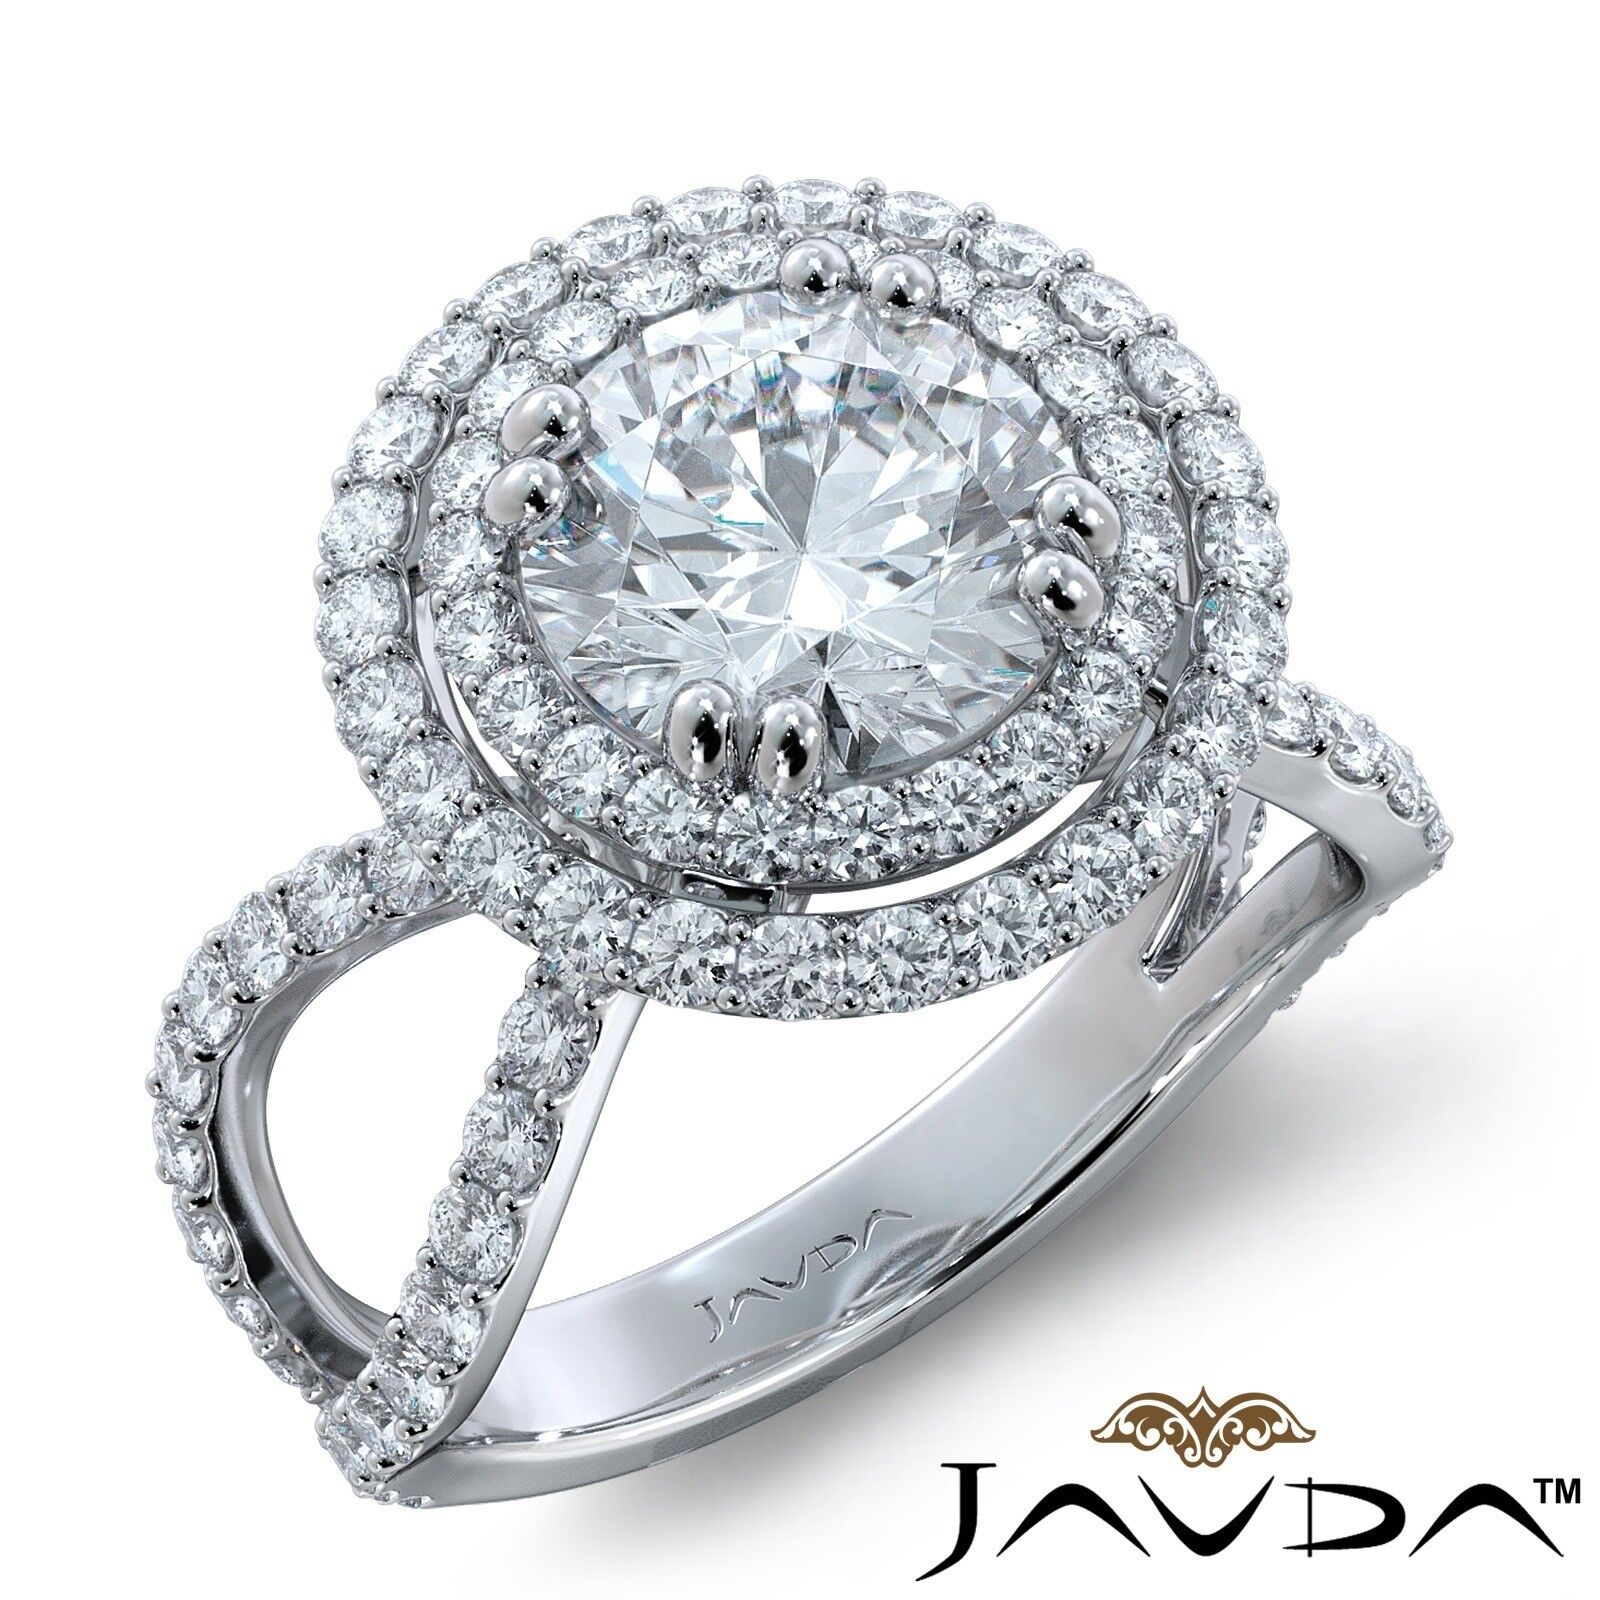 2.5ctw Split Shank Double Halo Round Diamond Engagement Ring GIA H-VVS1 W Gold